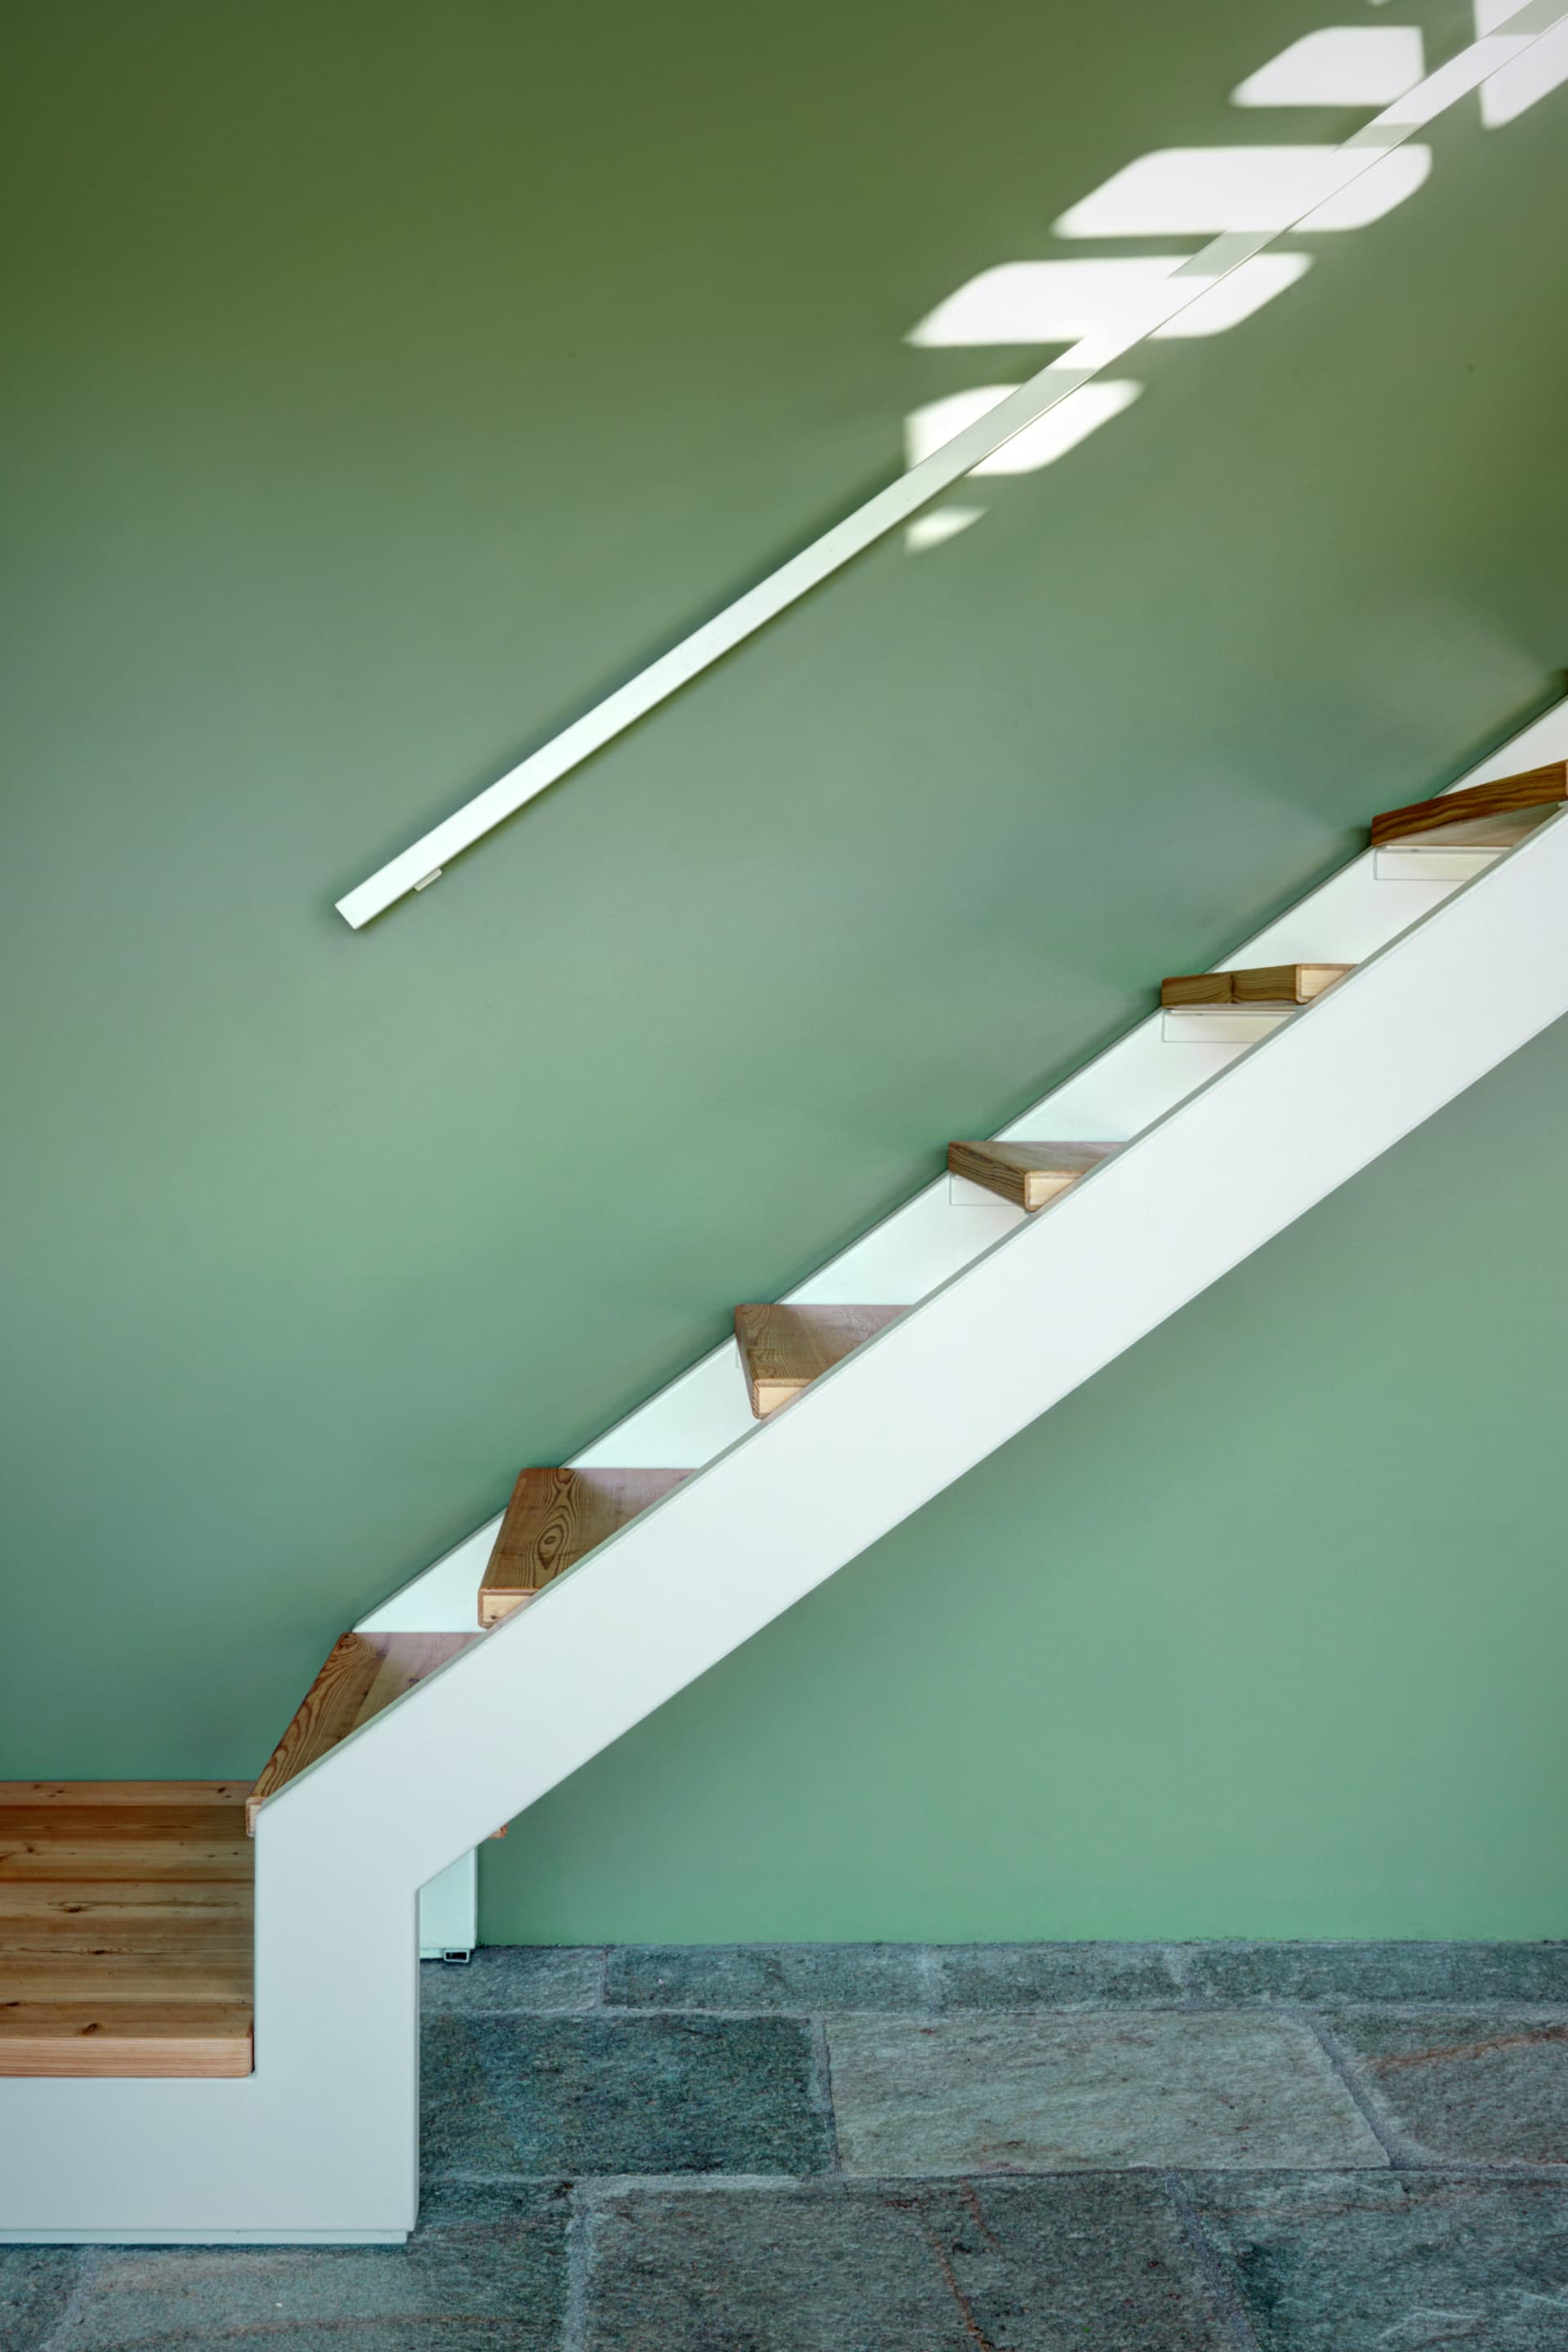 White metal and larch wood make a gentle contrast with the green painted wall.